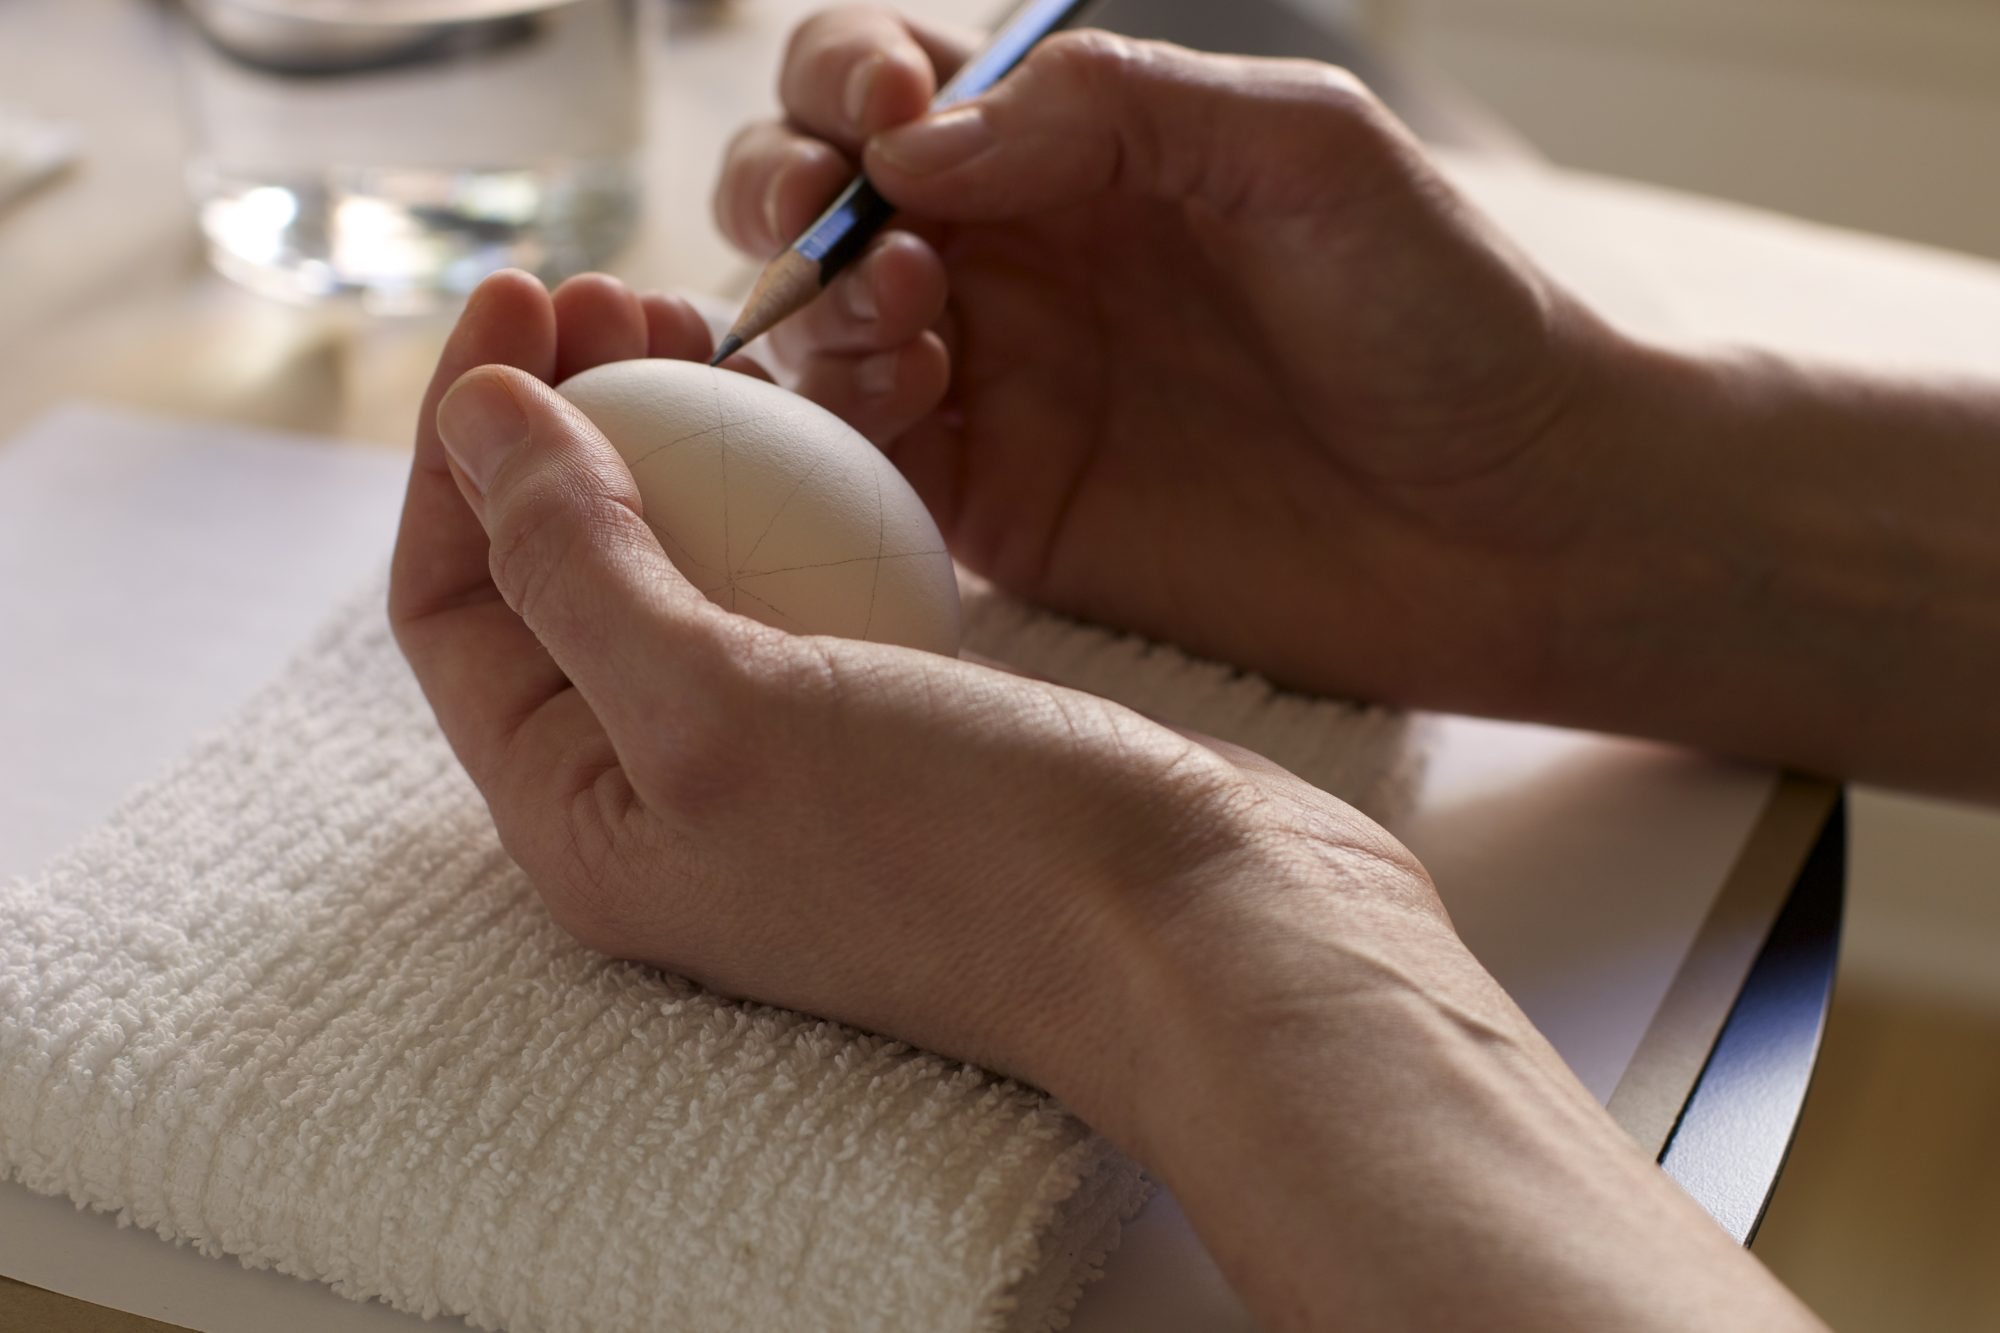 Drawing patterns on a white egg with a pencil